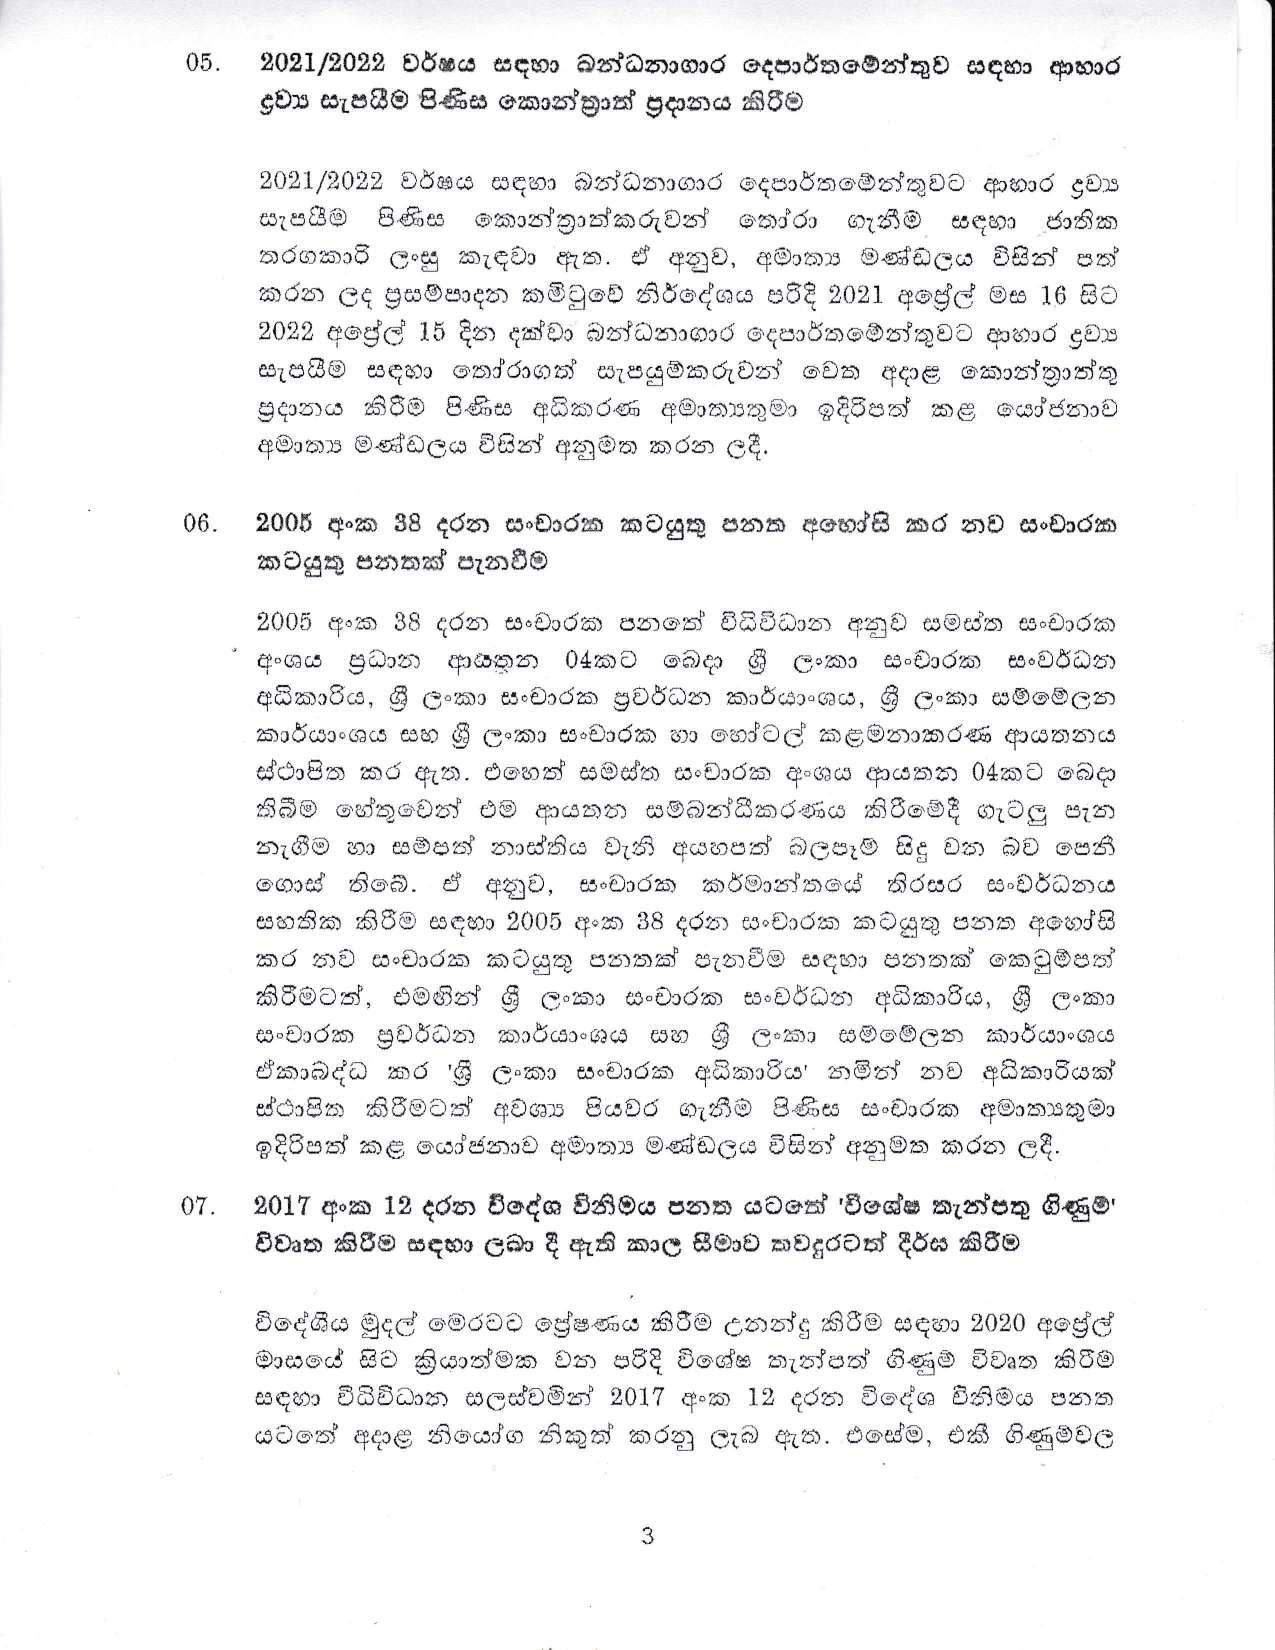 Cabinet Decision on 05.04.2021 Sinhala page 003